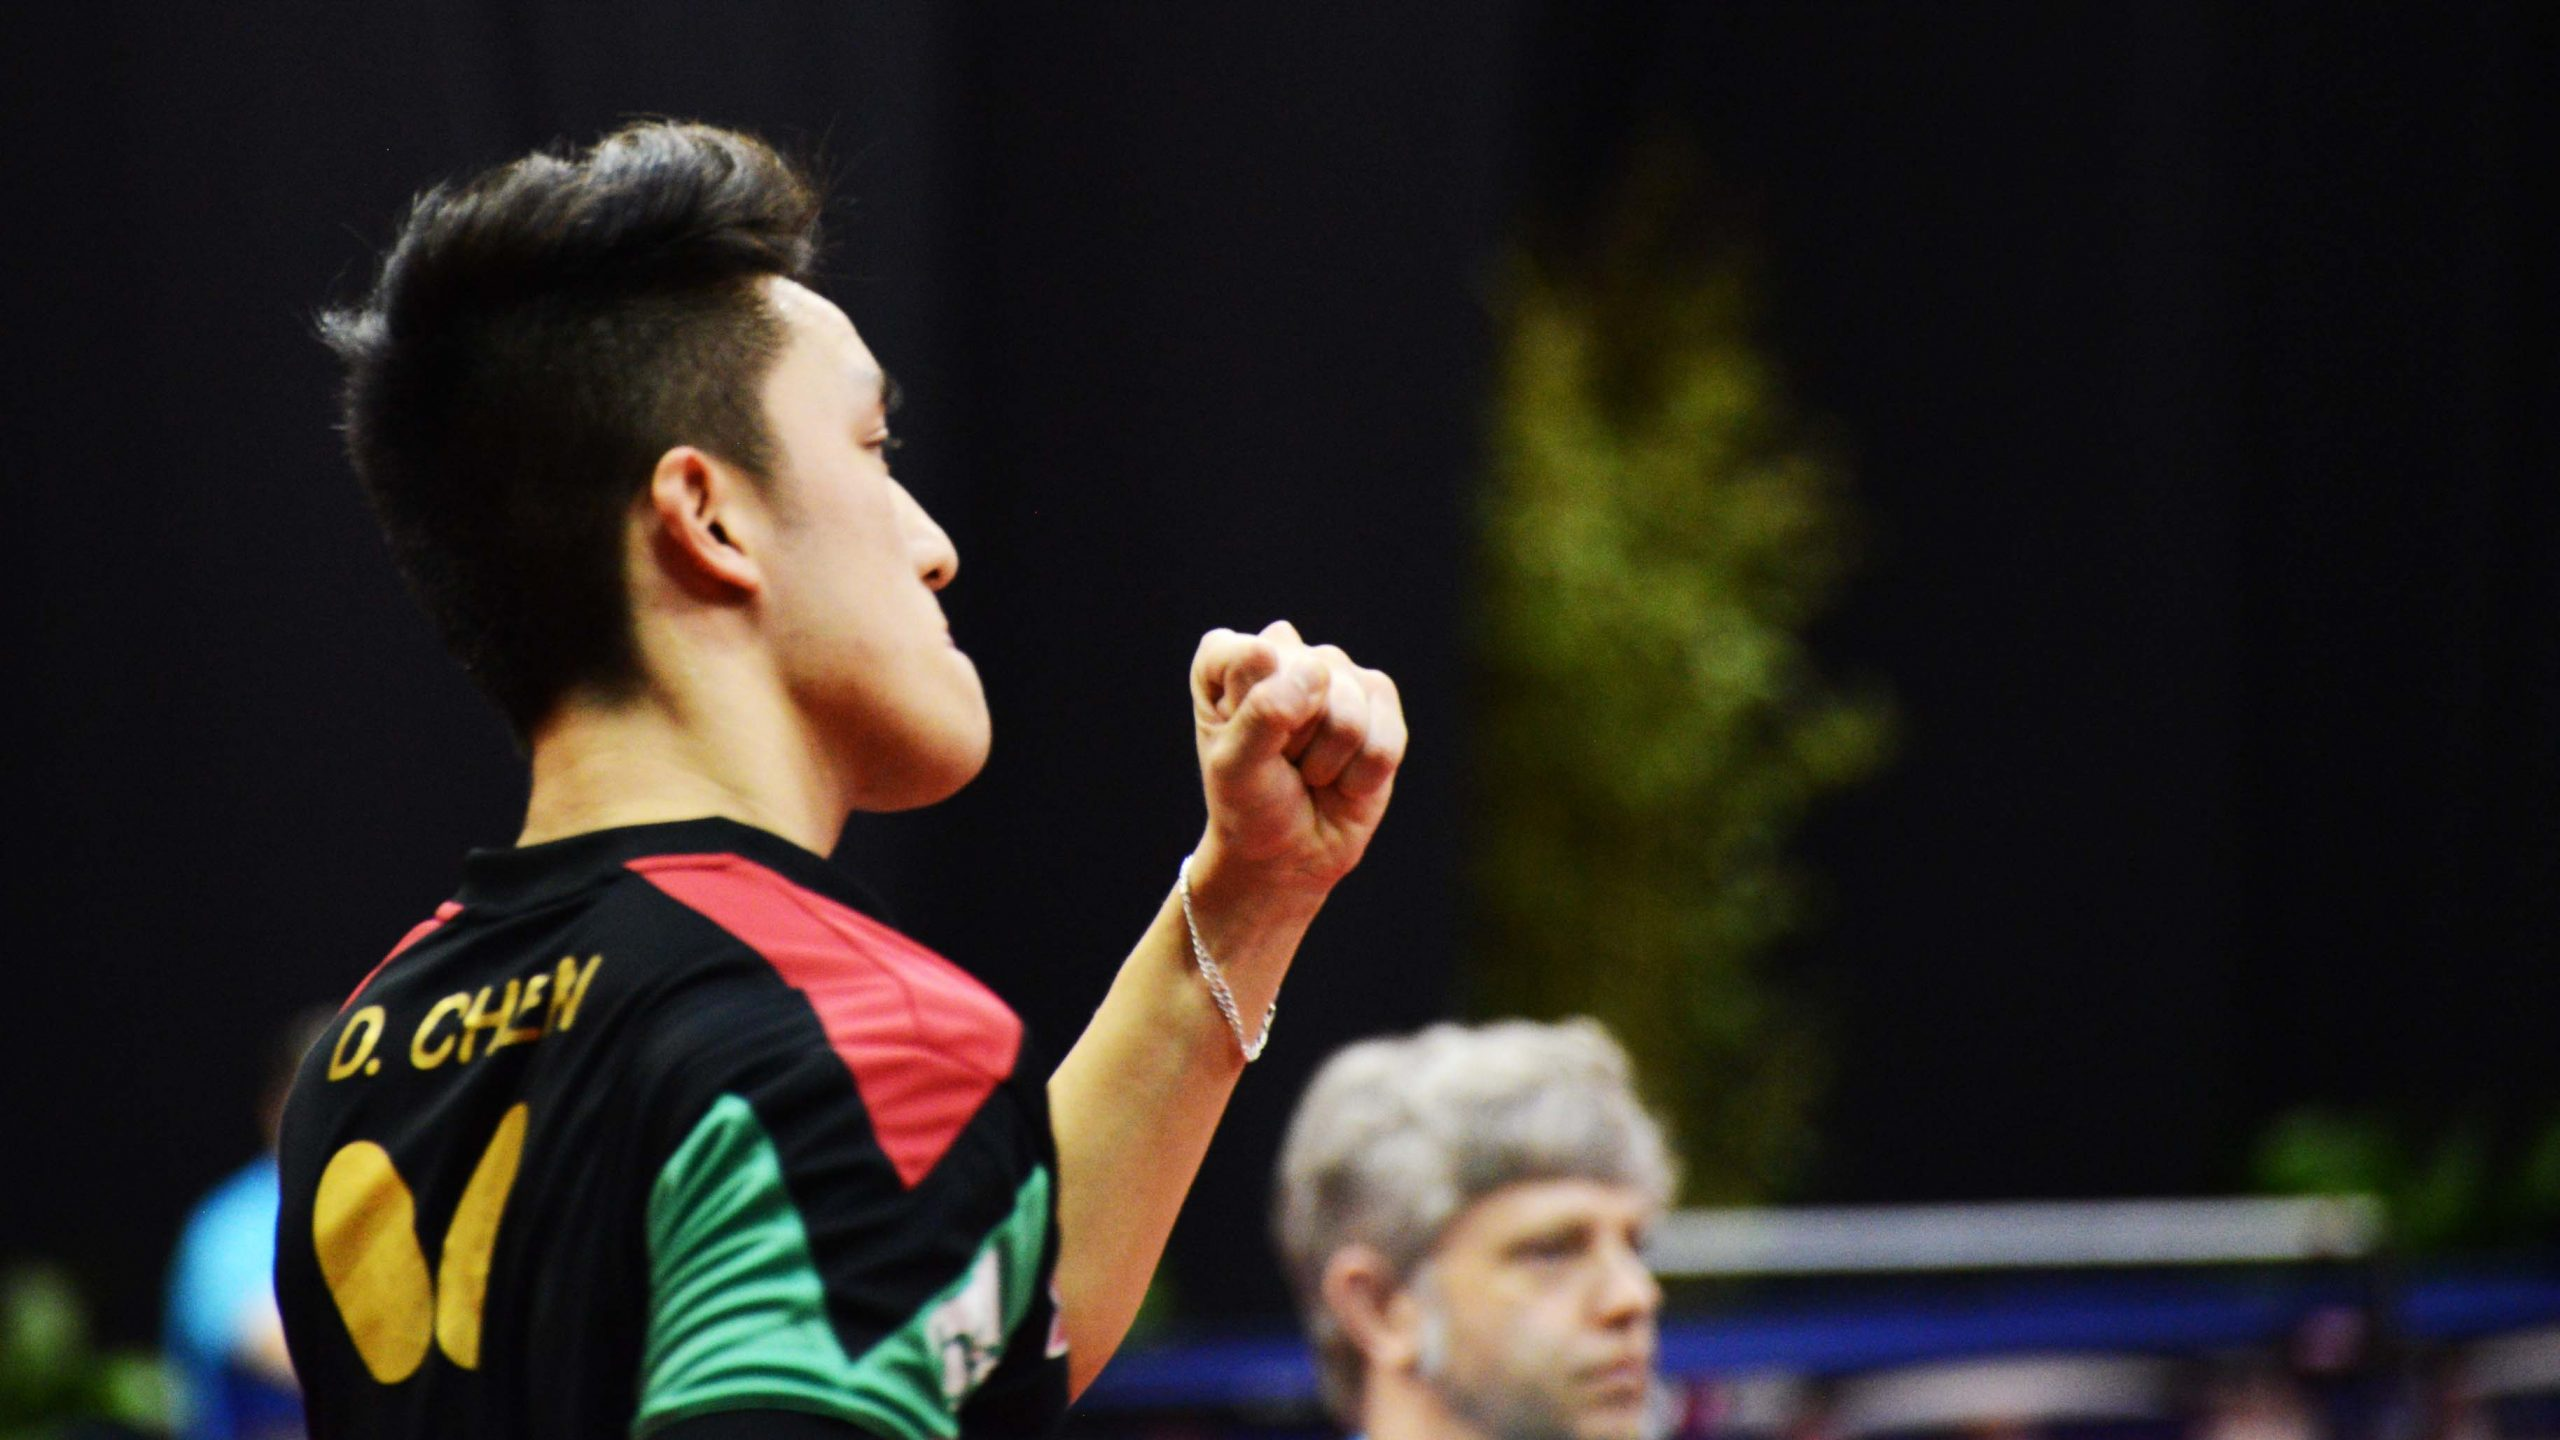 Day of Diogo – International Table Tennis Federation